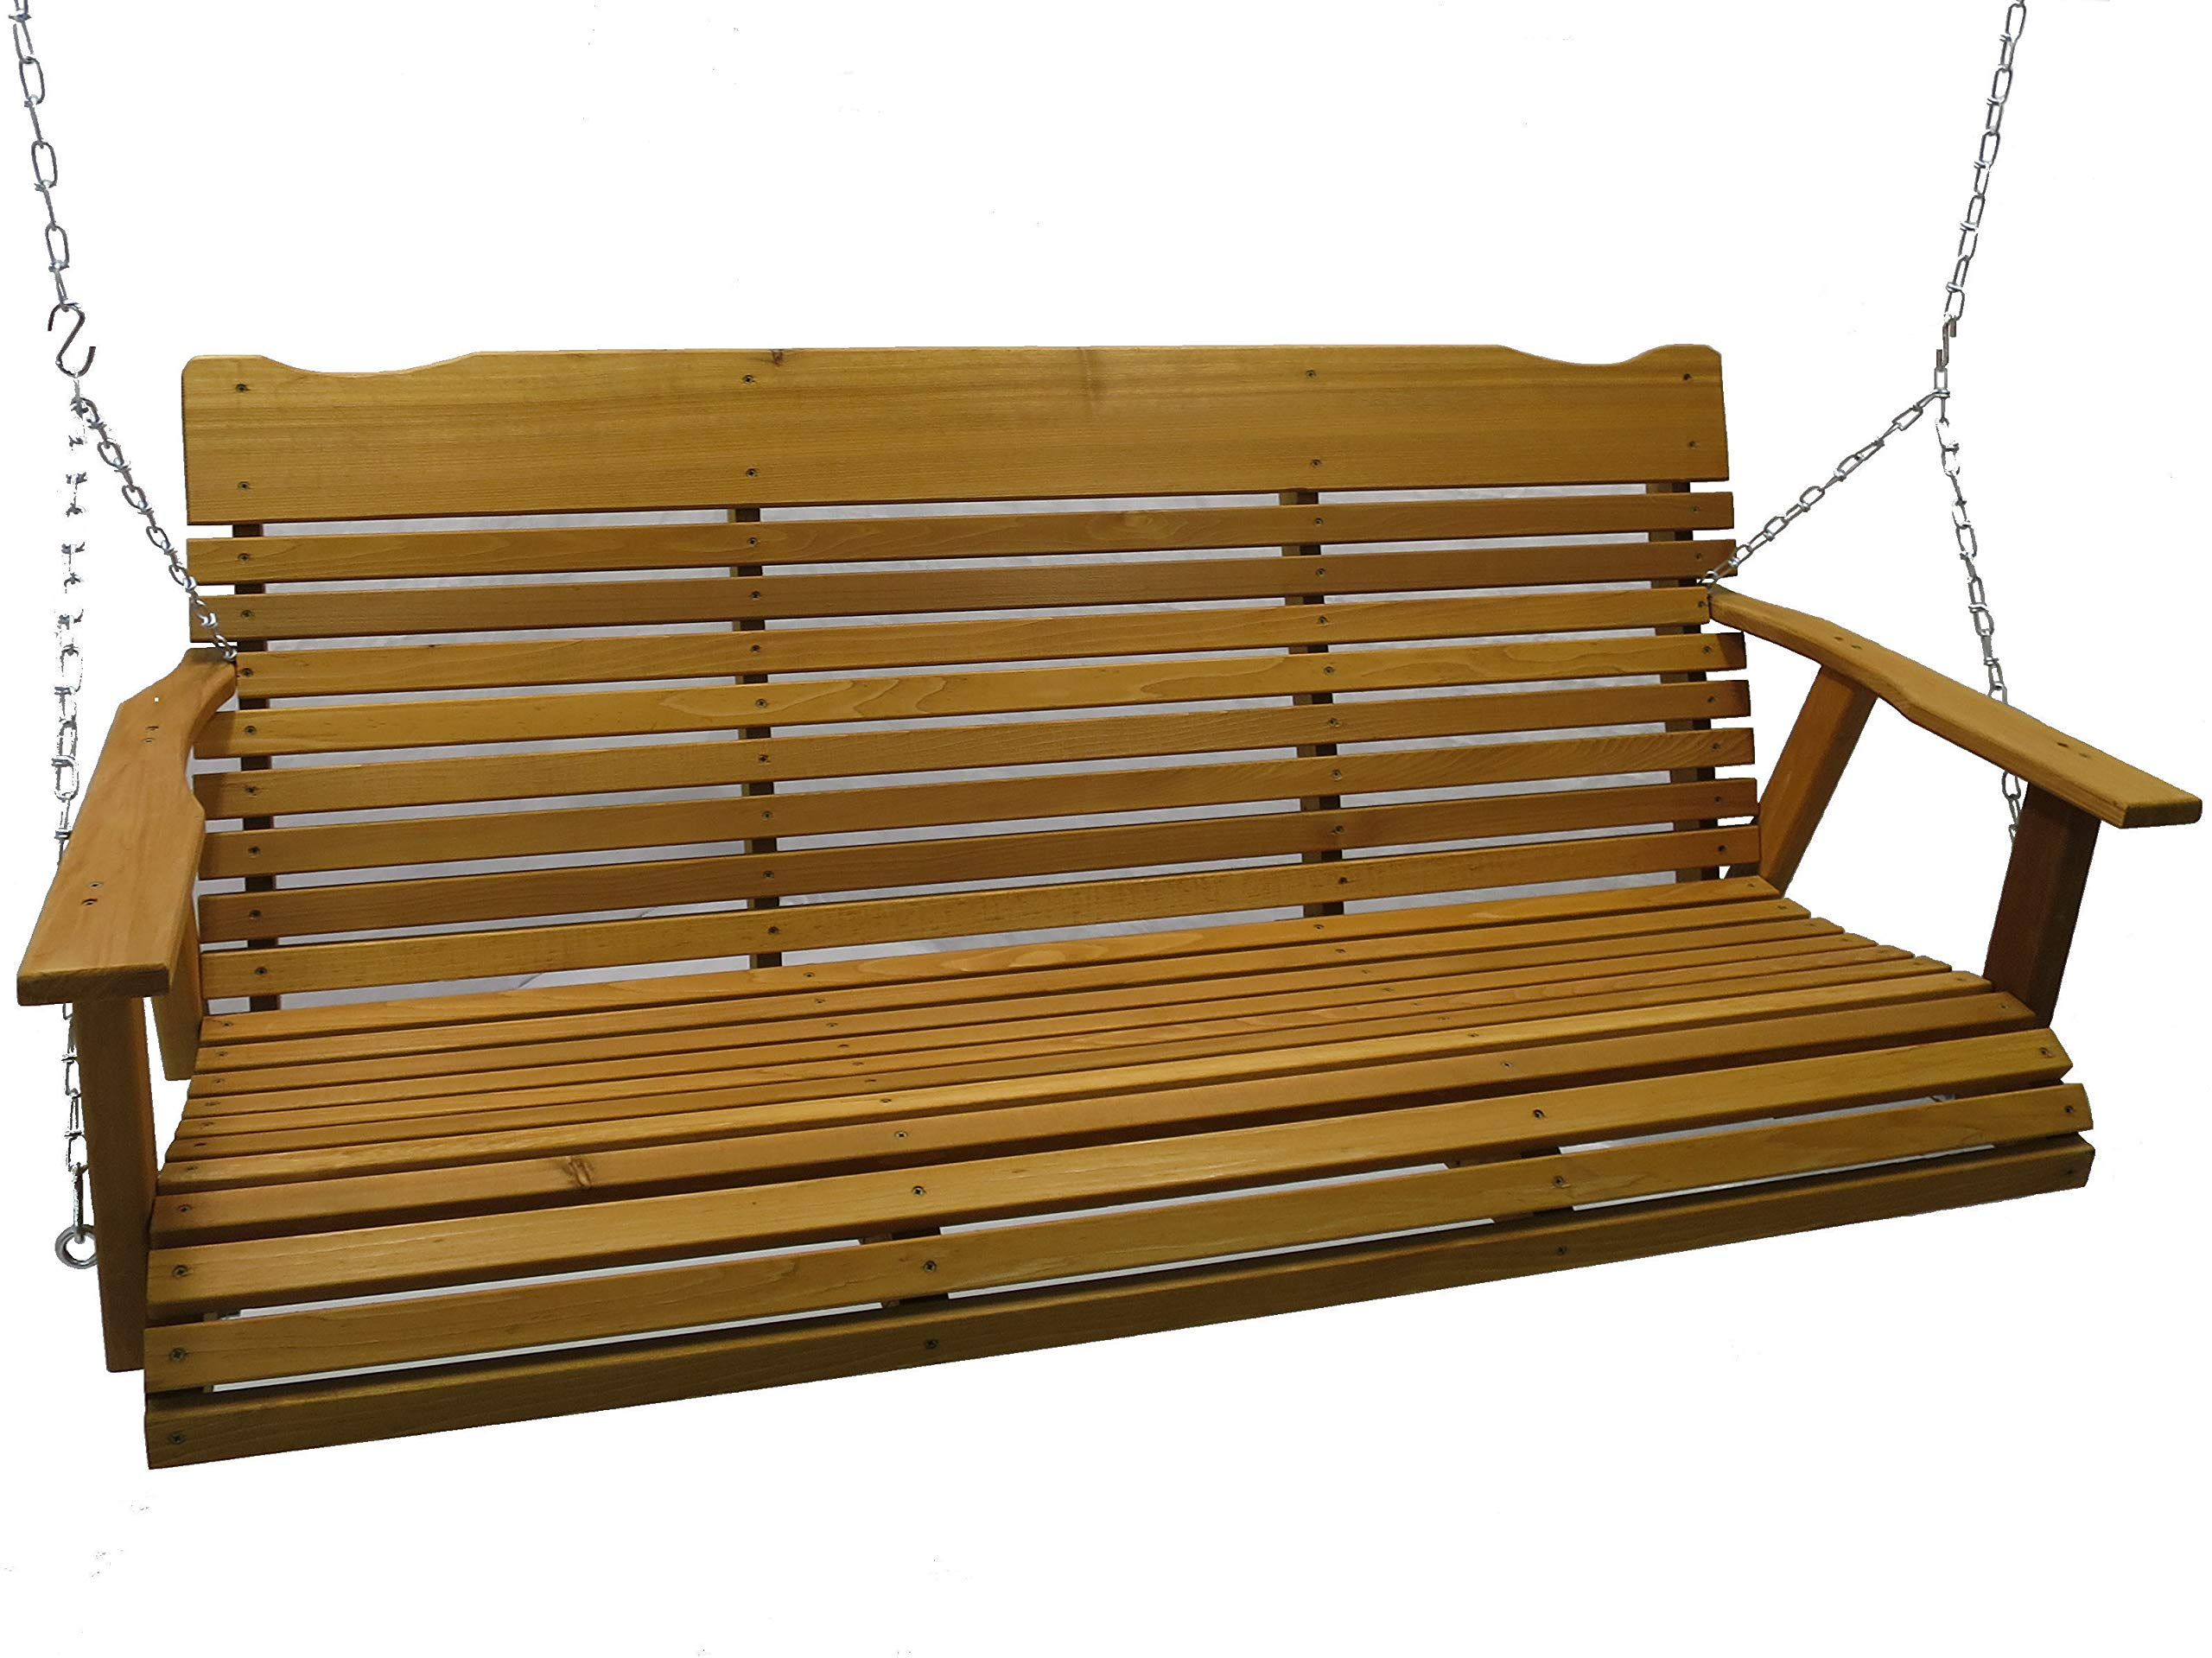 Kilmer Creek 5' Cedar Porch Swing W/stained Finish, Amish Crafted - Includes Chain & Springs